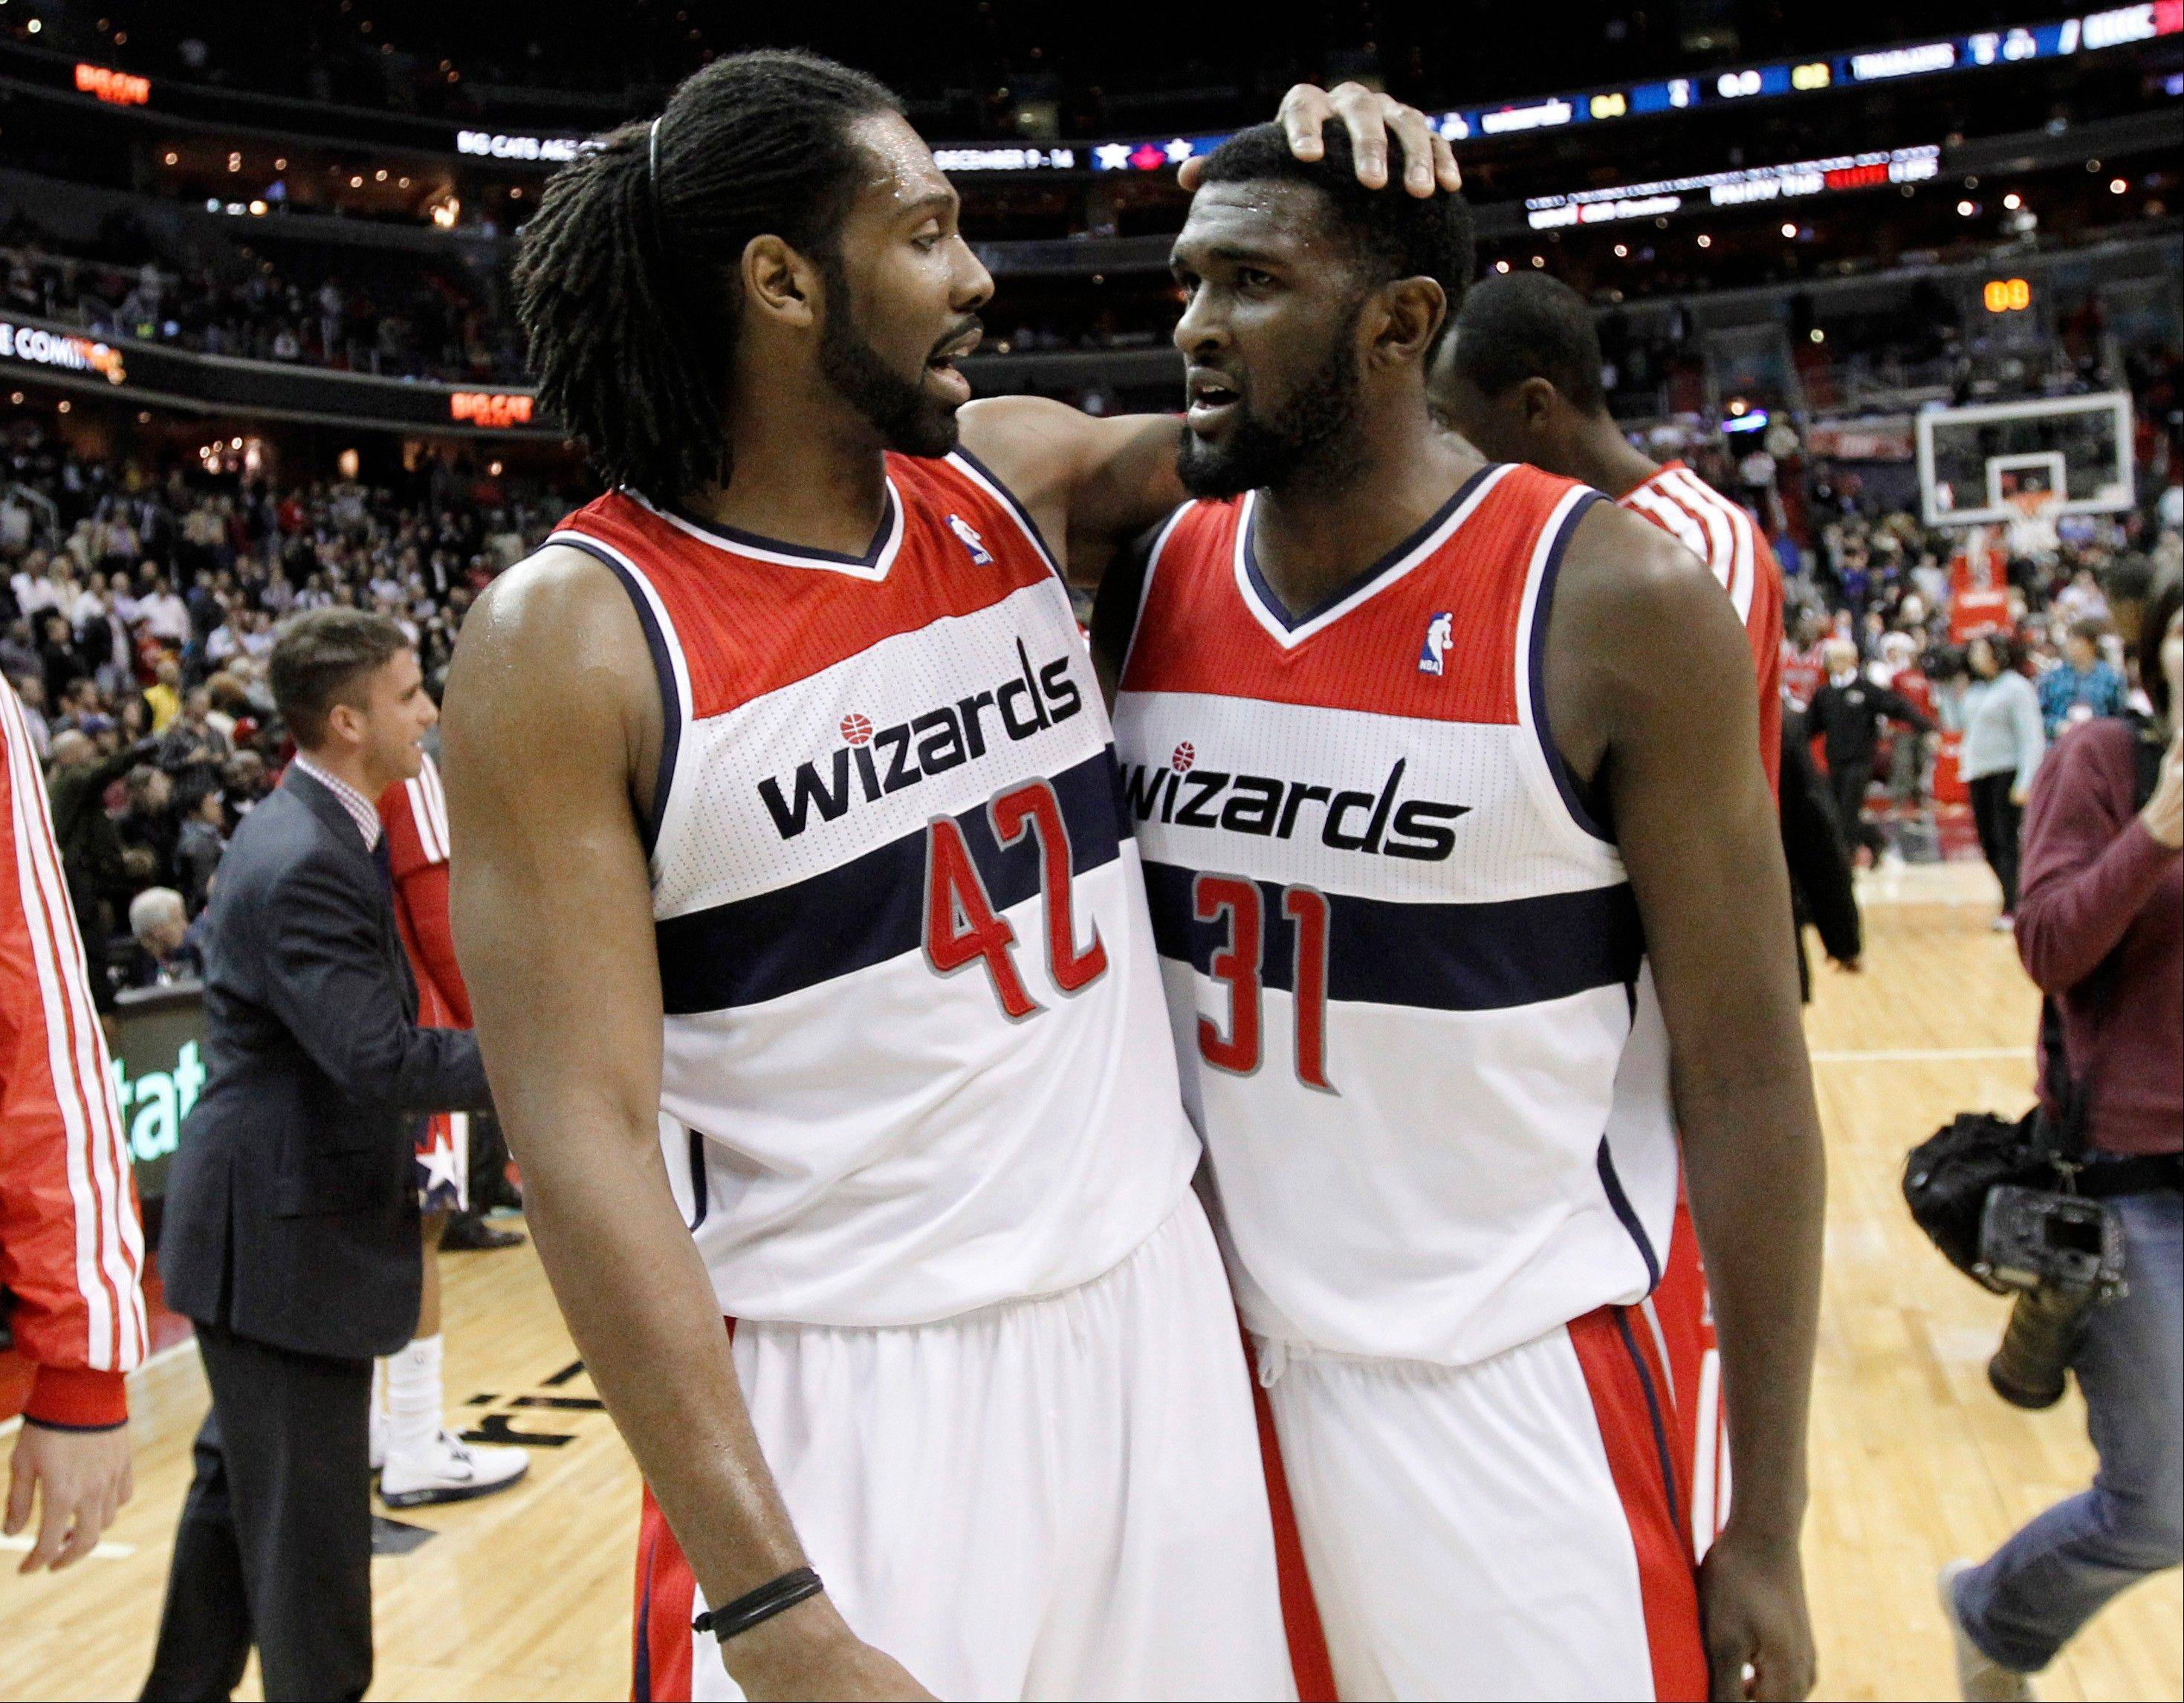 Washington Wizards center Nene, left, and forward Chris Singleton celebrate Wednesday in the closing moments against the Portland Trail Blazers in Washington. The Wizards won for the first time this season, beating the Trail Blazers 84-82.